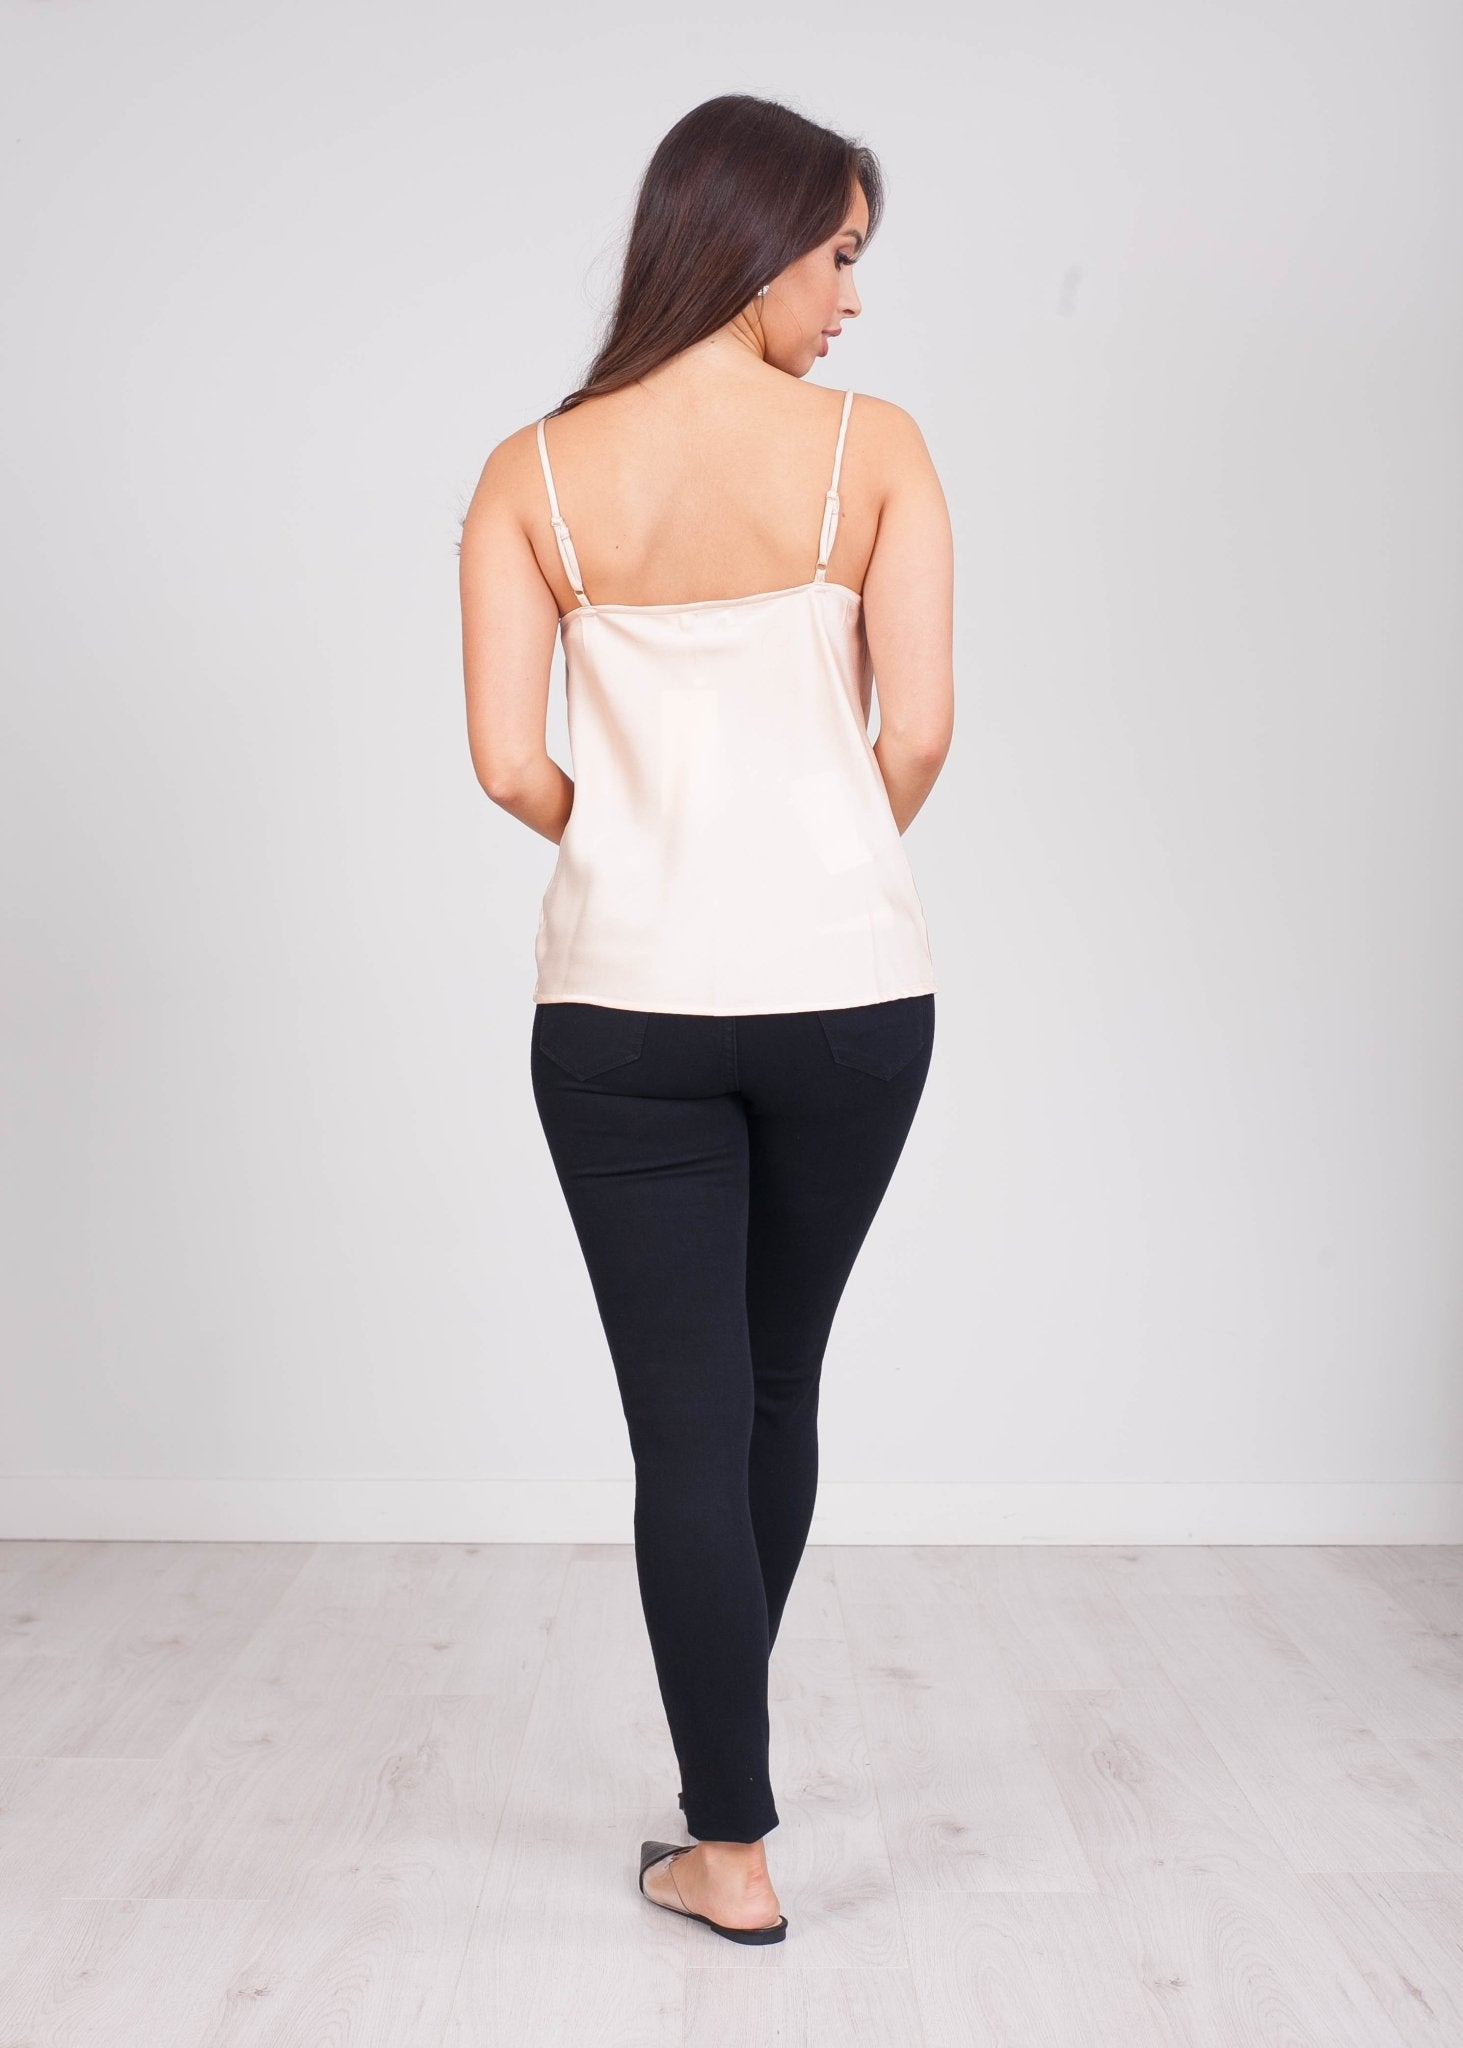 Emilia Cream Cowl Neck Cami - The Walk in Wardrobe